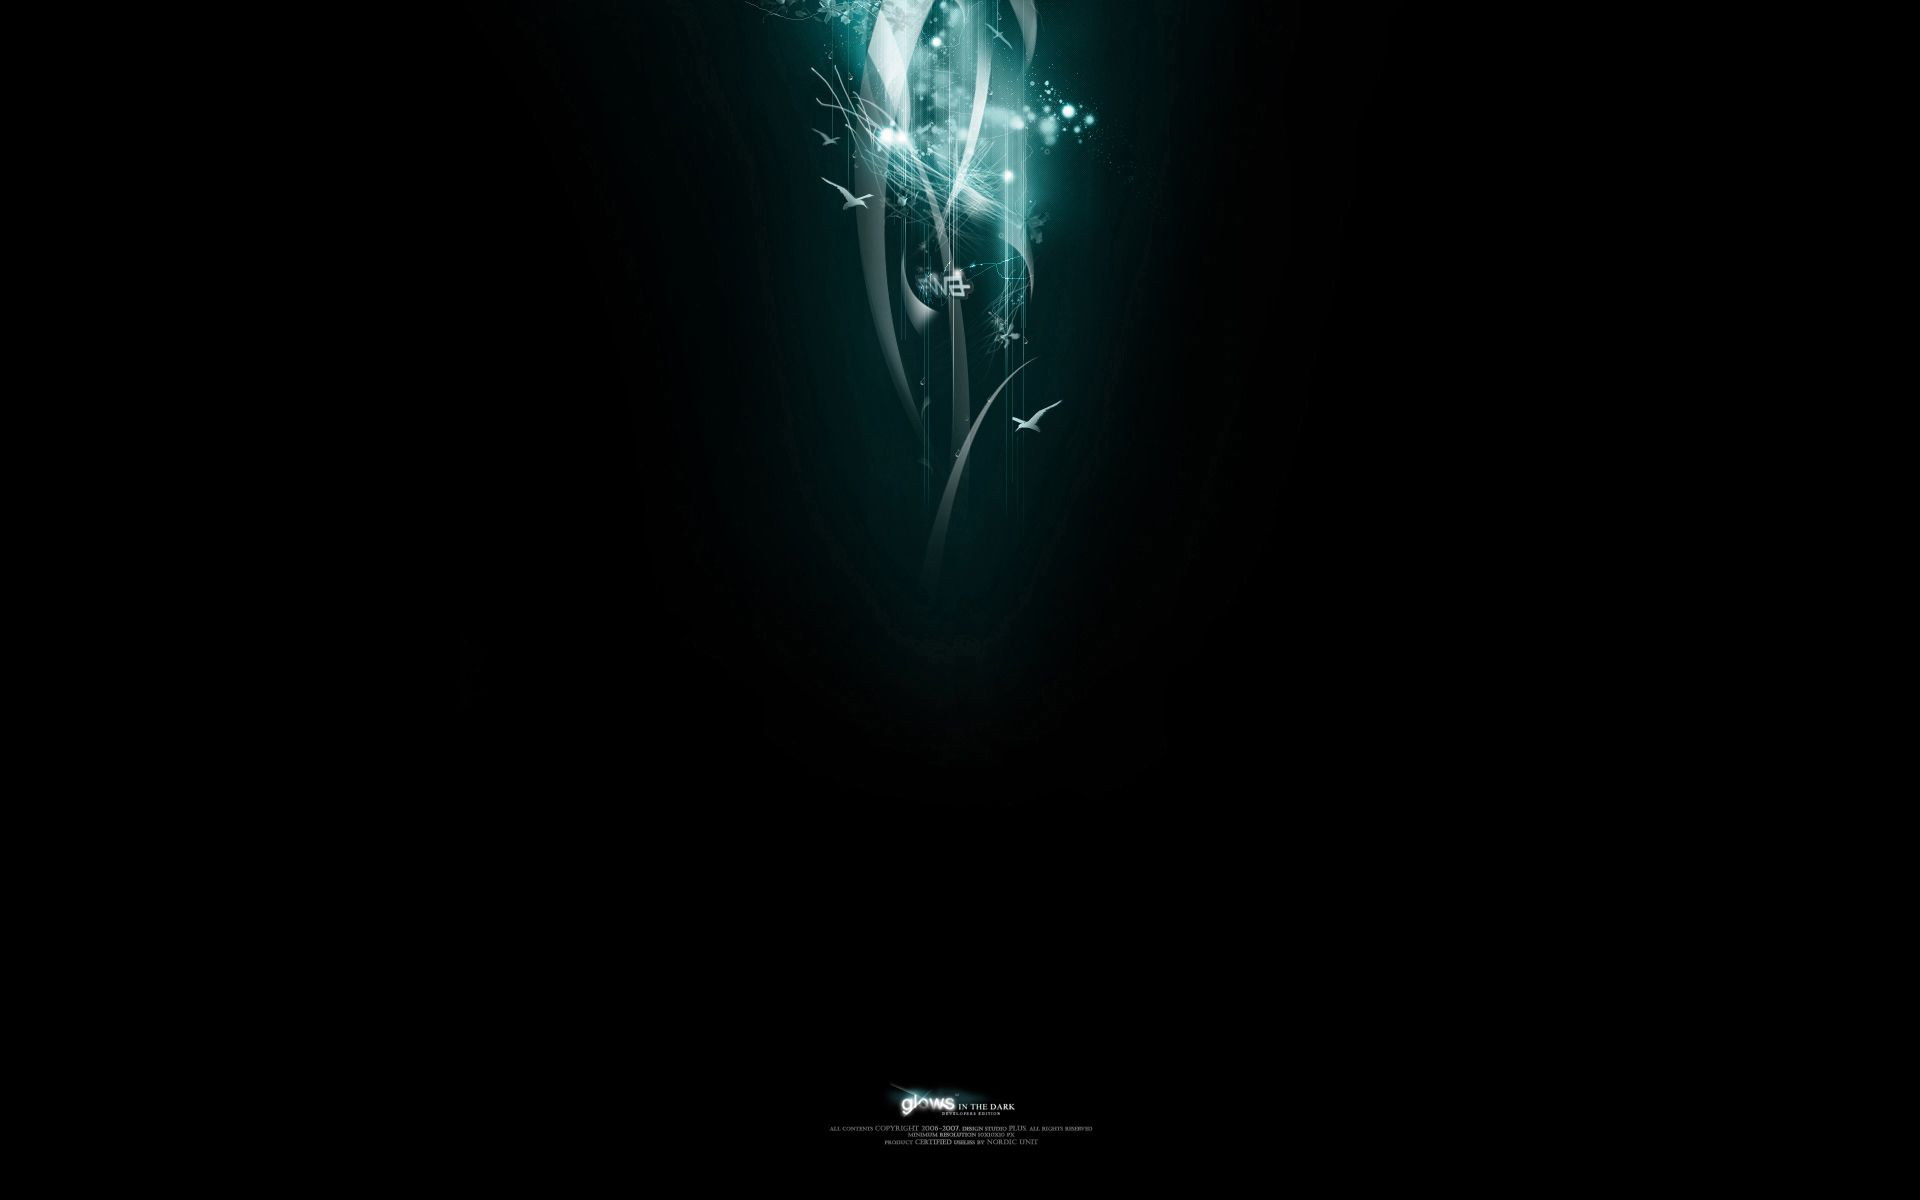 Collection of Cool Dark Wallpapers on HDWallpapers